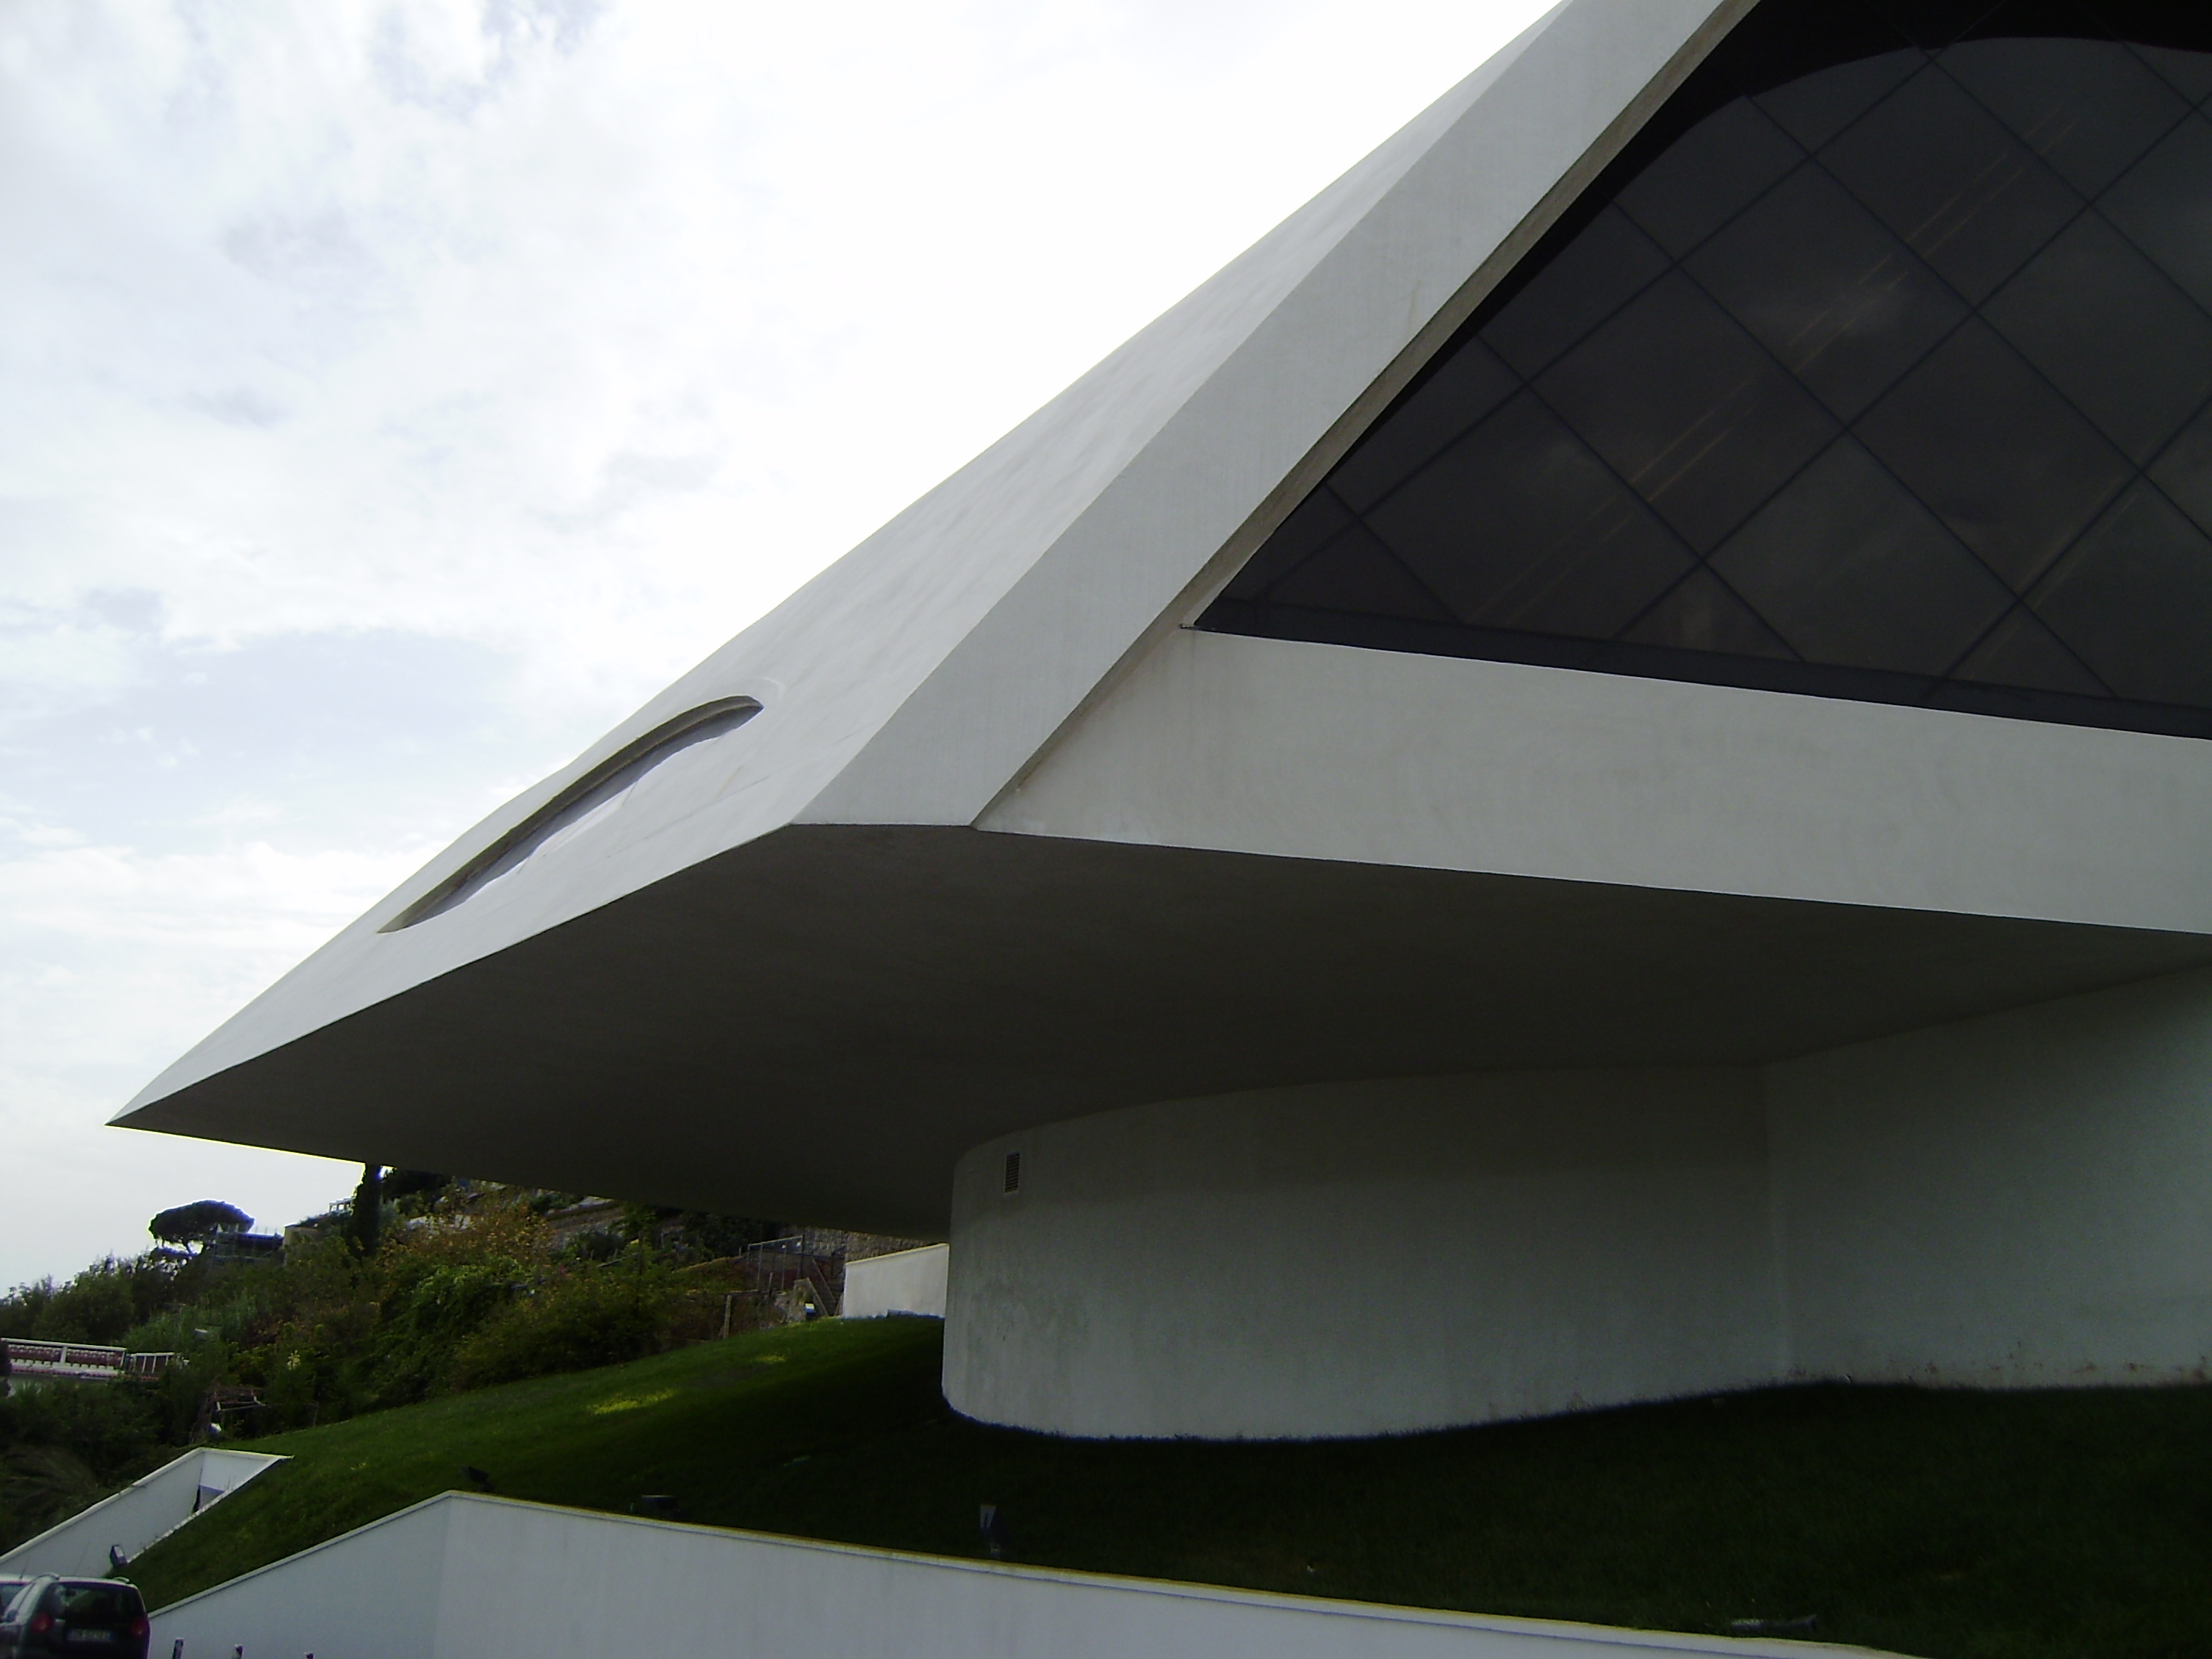 Oscar Niemeyer E Lauditorium Di Ravello further Galleria Sculture Mimmo Paladino 45 furthermore Amalfi furthermore 578674 as well Oscar Niemeyer Auditorium. on oscar niemeyer auditorium ravello